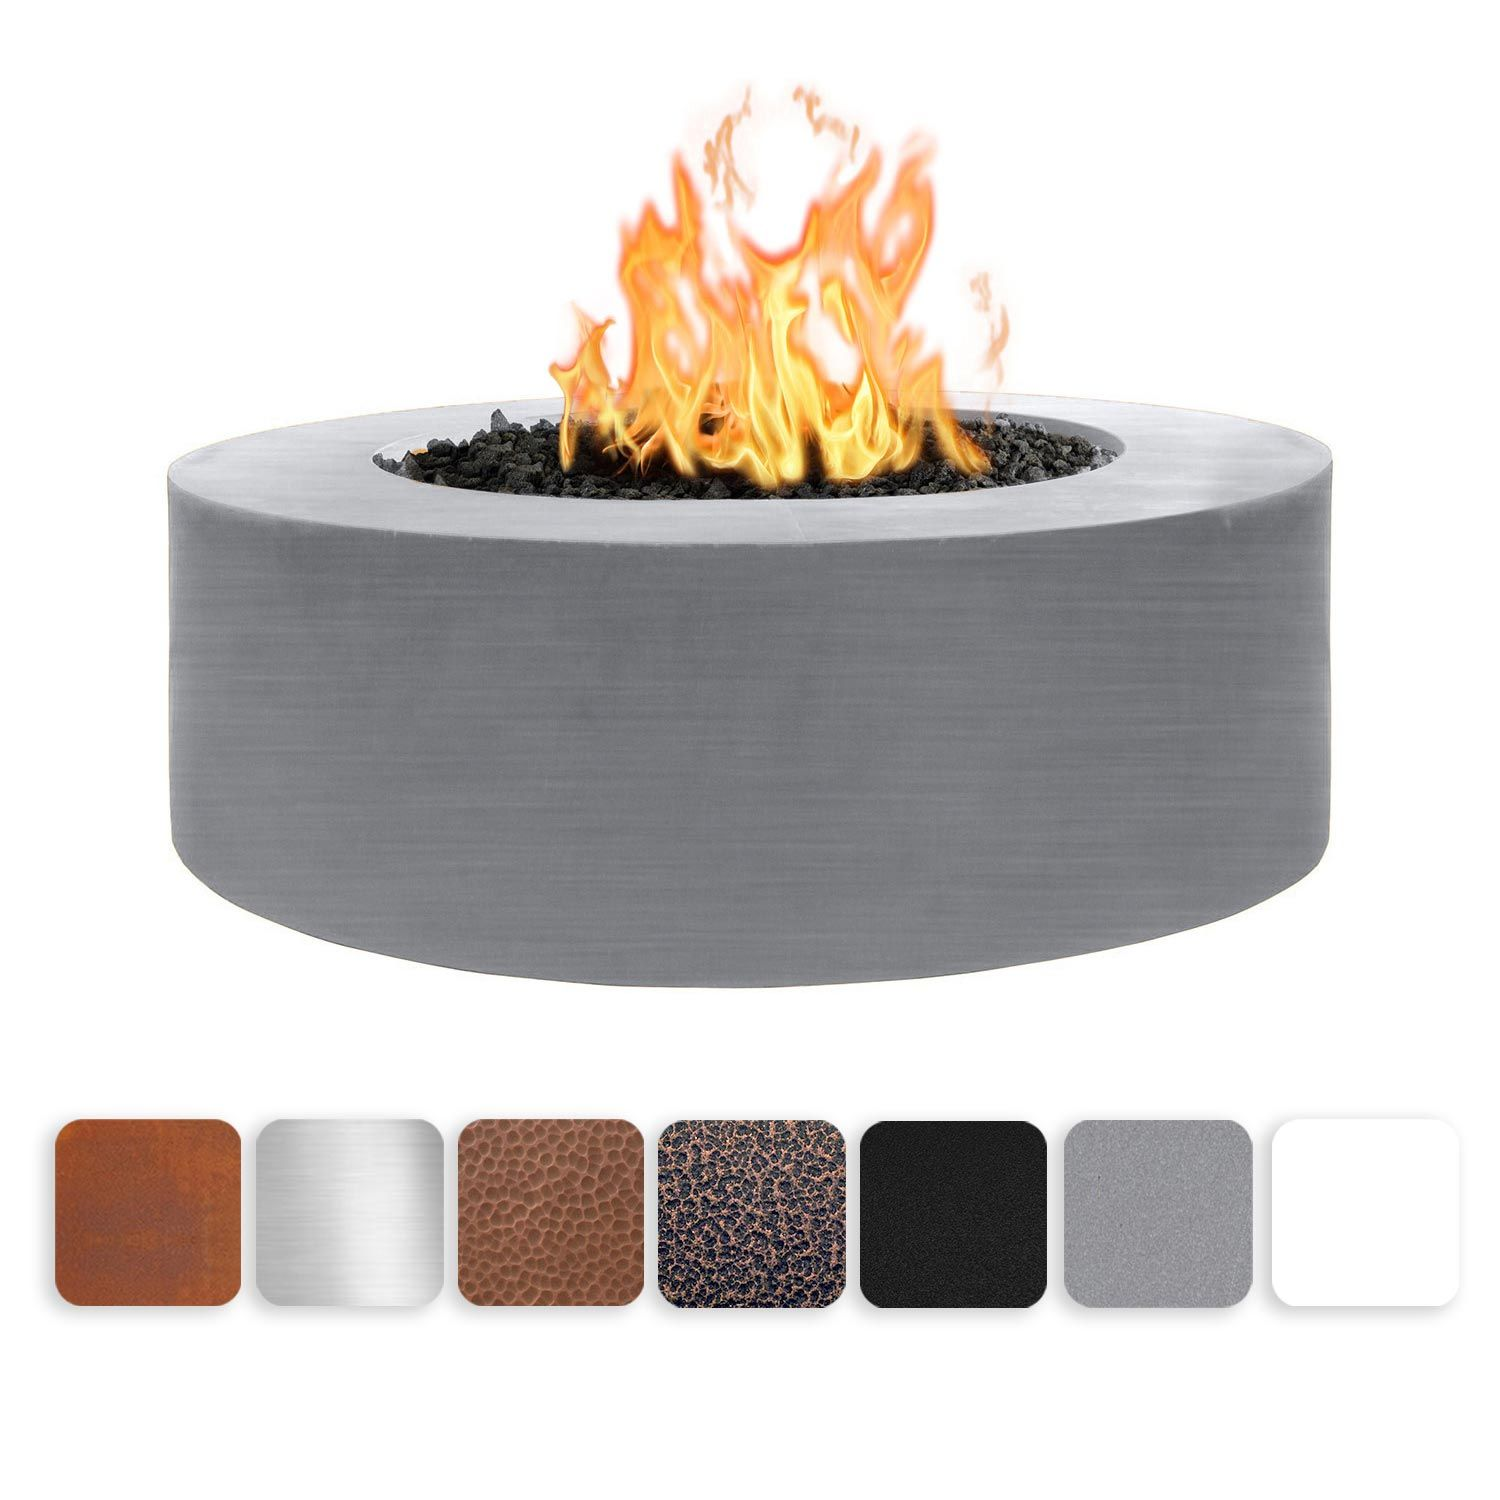 The Outdoor Plus Unity Metal Fire Pit OPT-UNY-60 Fire Pit The Outdoor Plus Match Light Natural Gas Gray Powdercoat